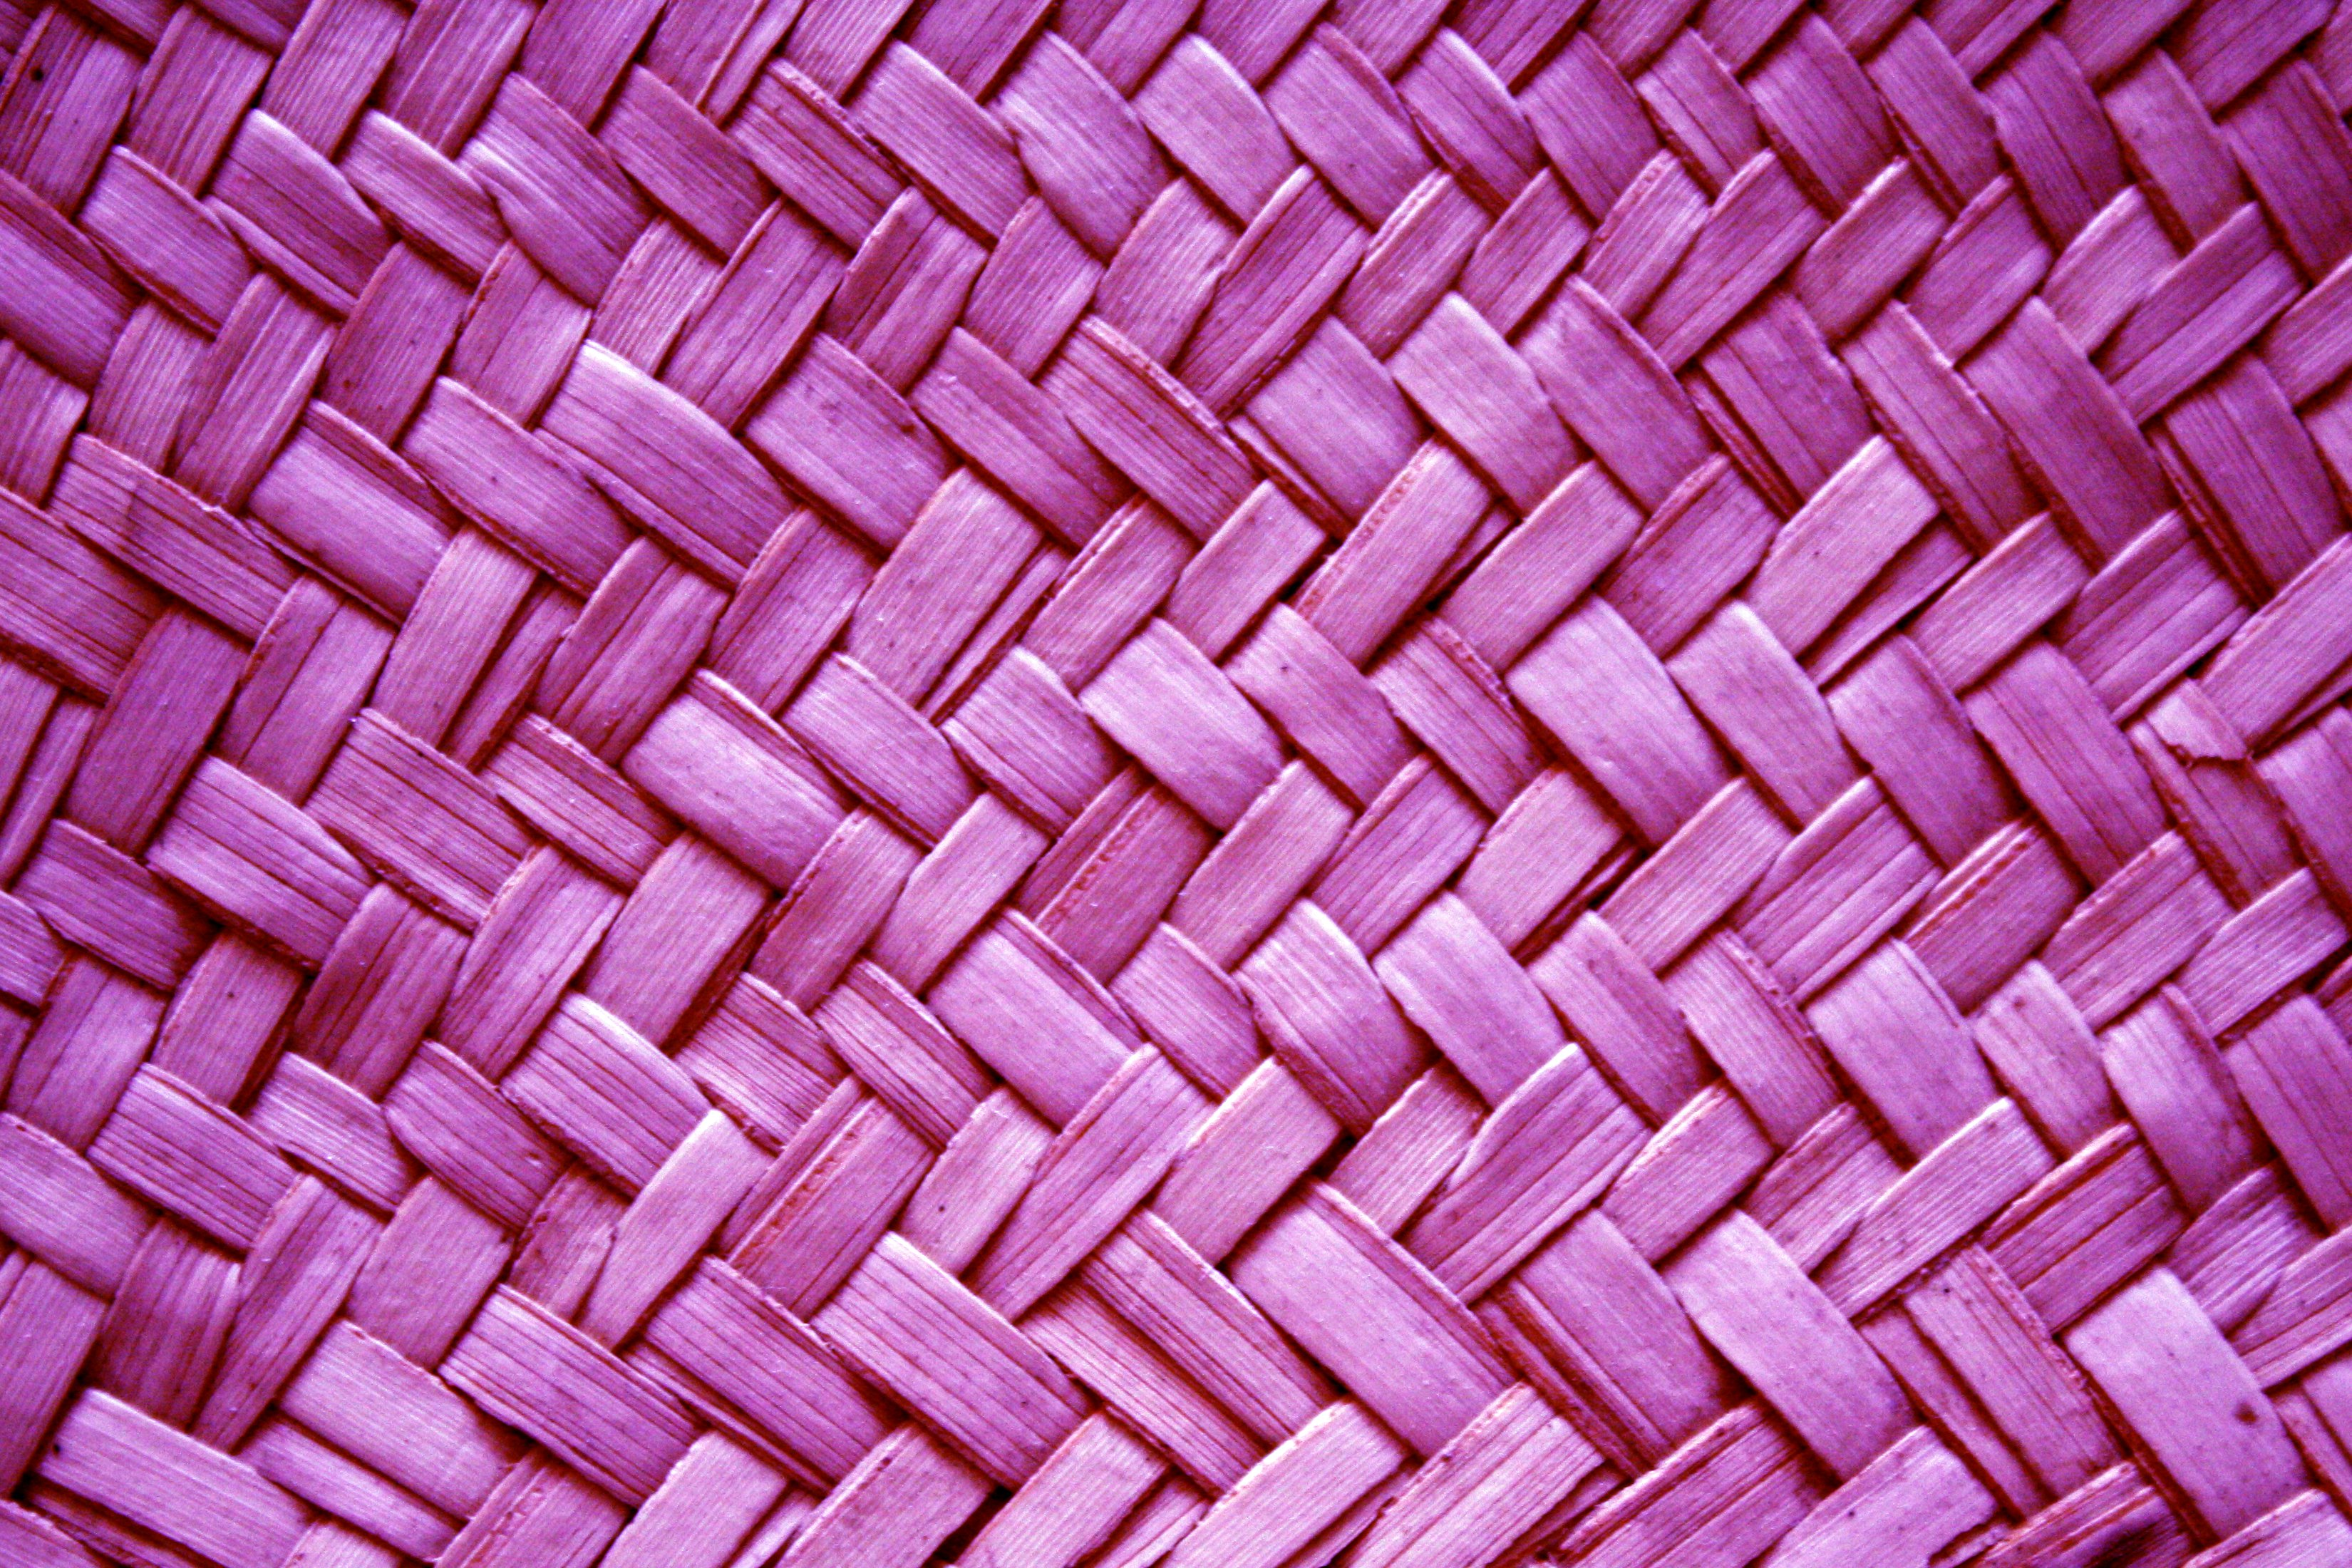 Purple Woven Straw Texture Picture Free Photograph